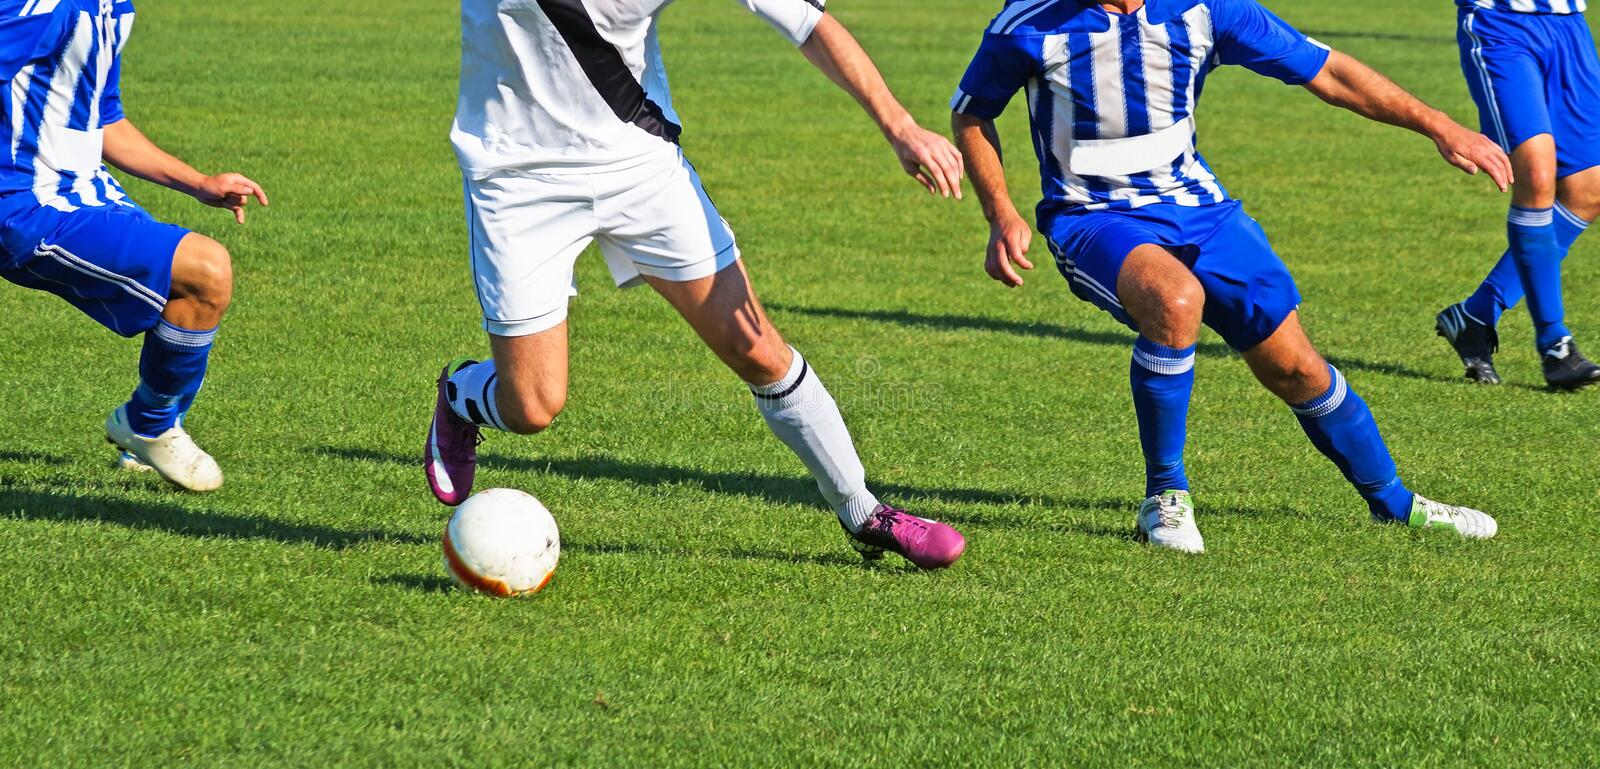 Soccer players in action. During the match royalty free stock photos